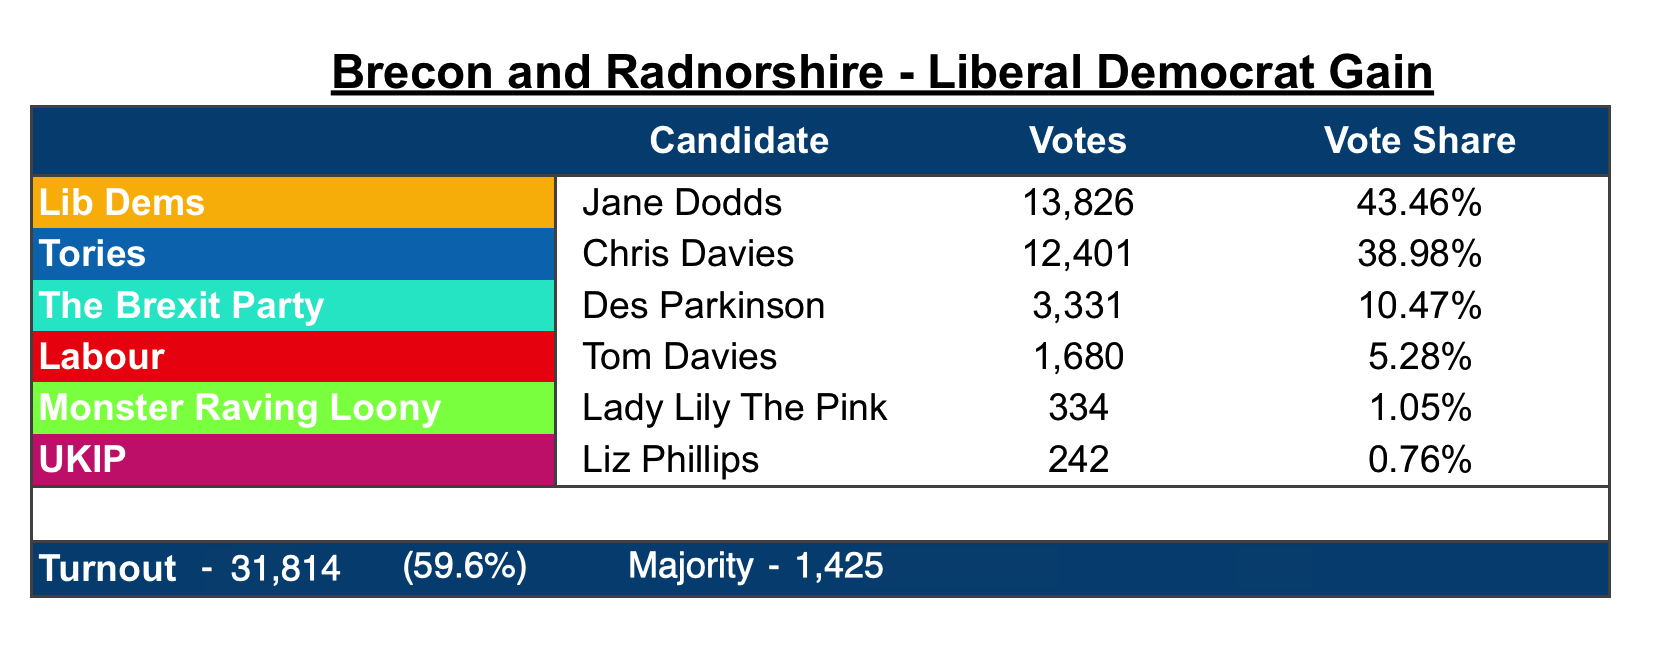 Brecon and Radnorshire by election result table 2019